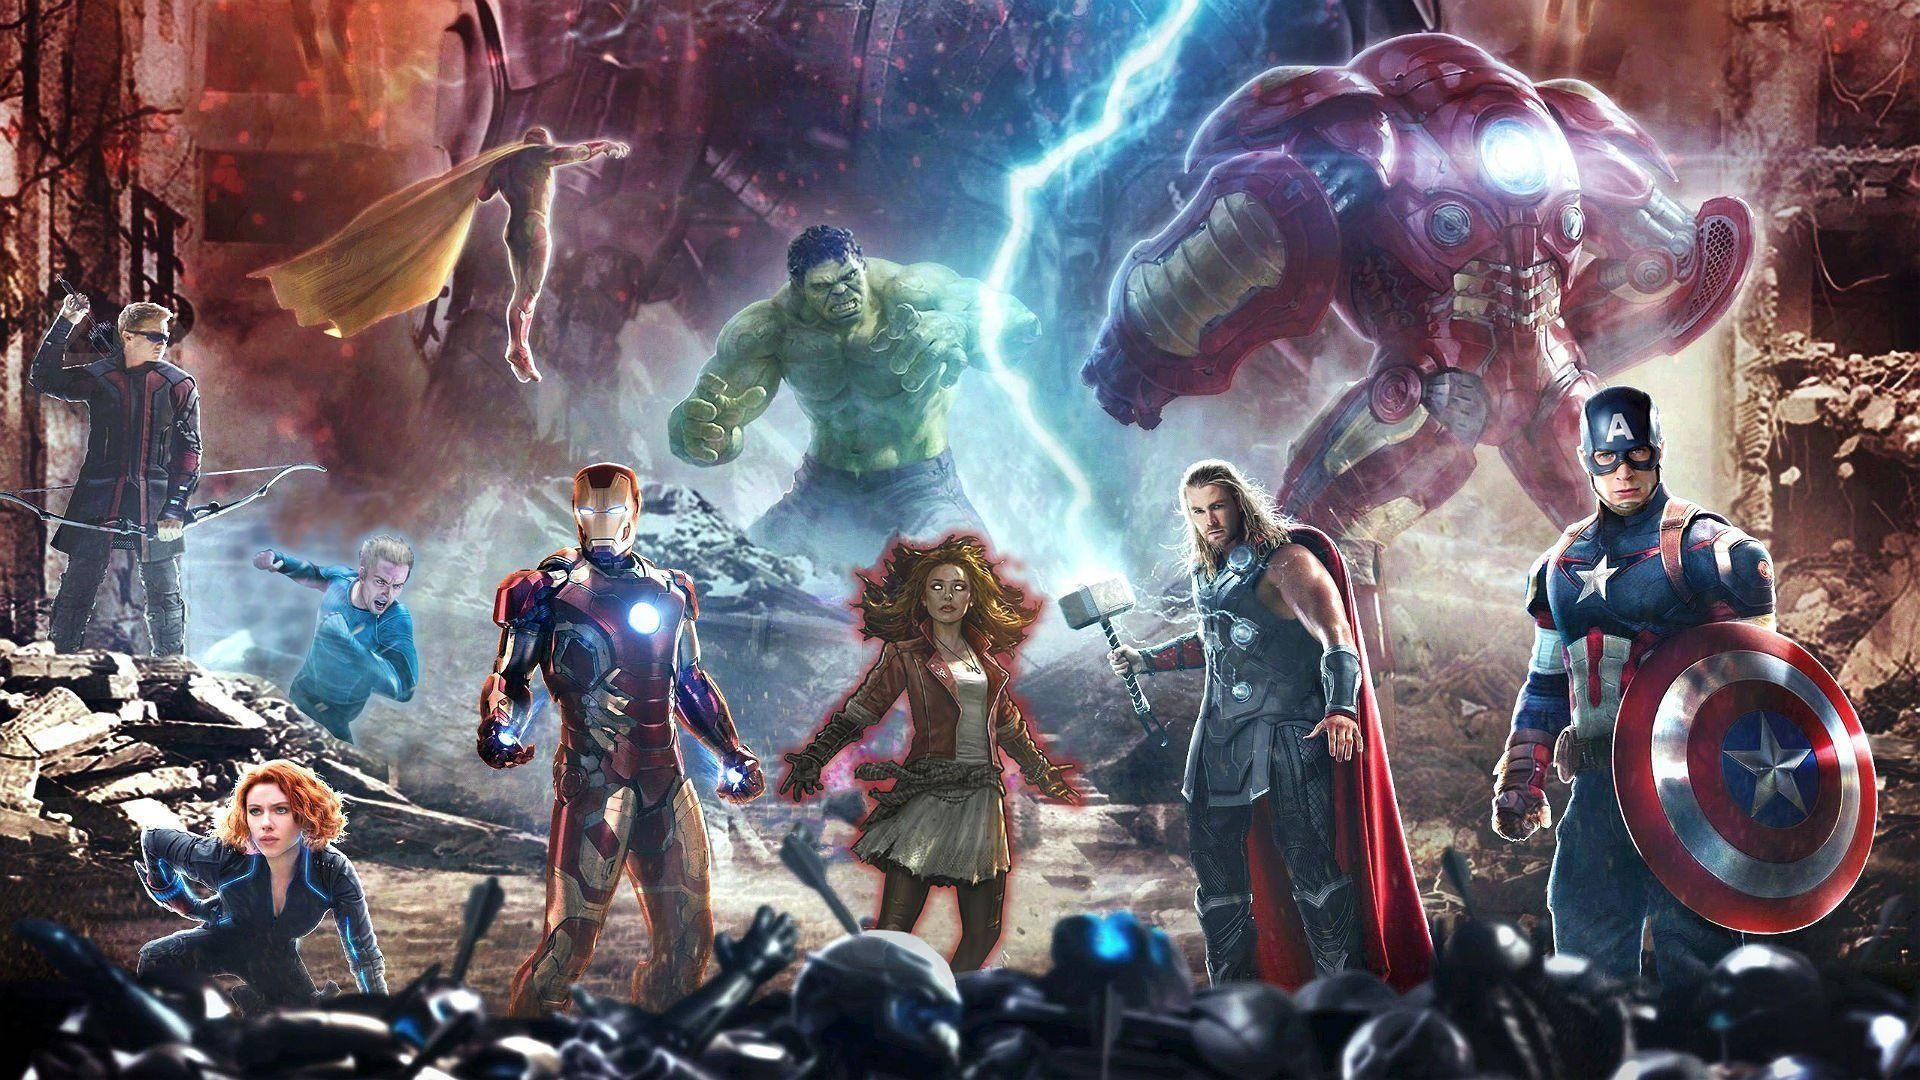 Play Avengers: Age of Ultron games - Free Games AZ